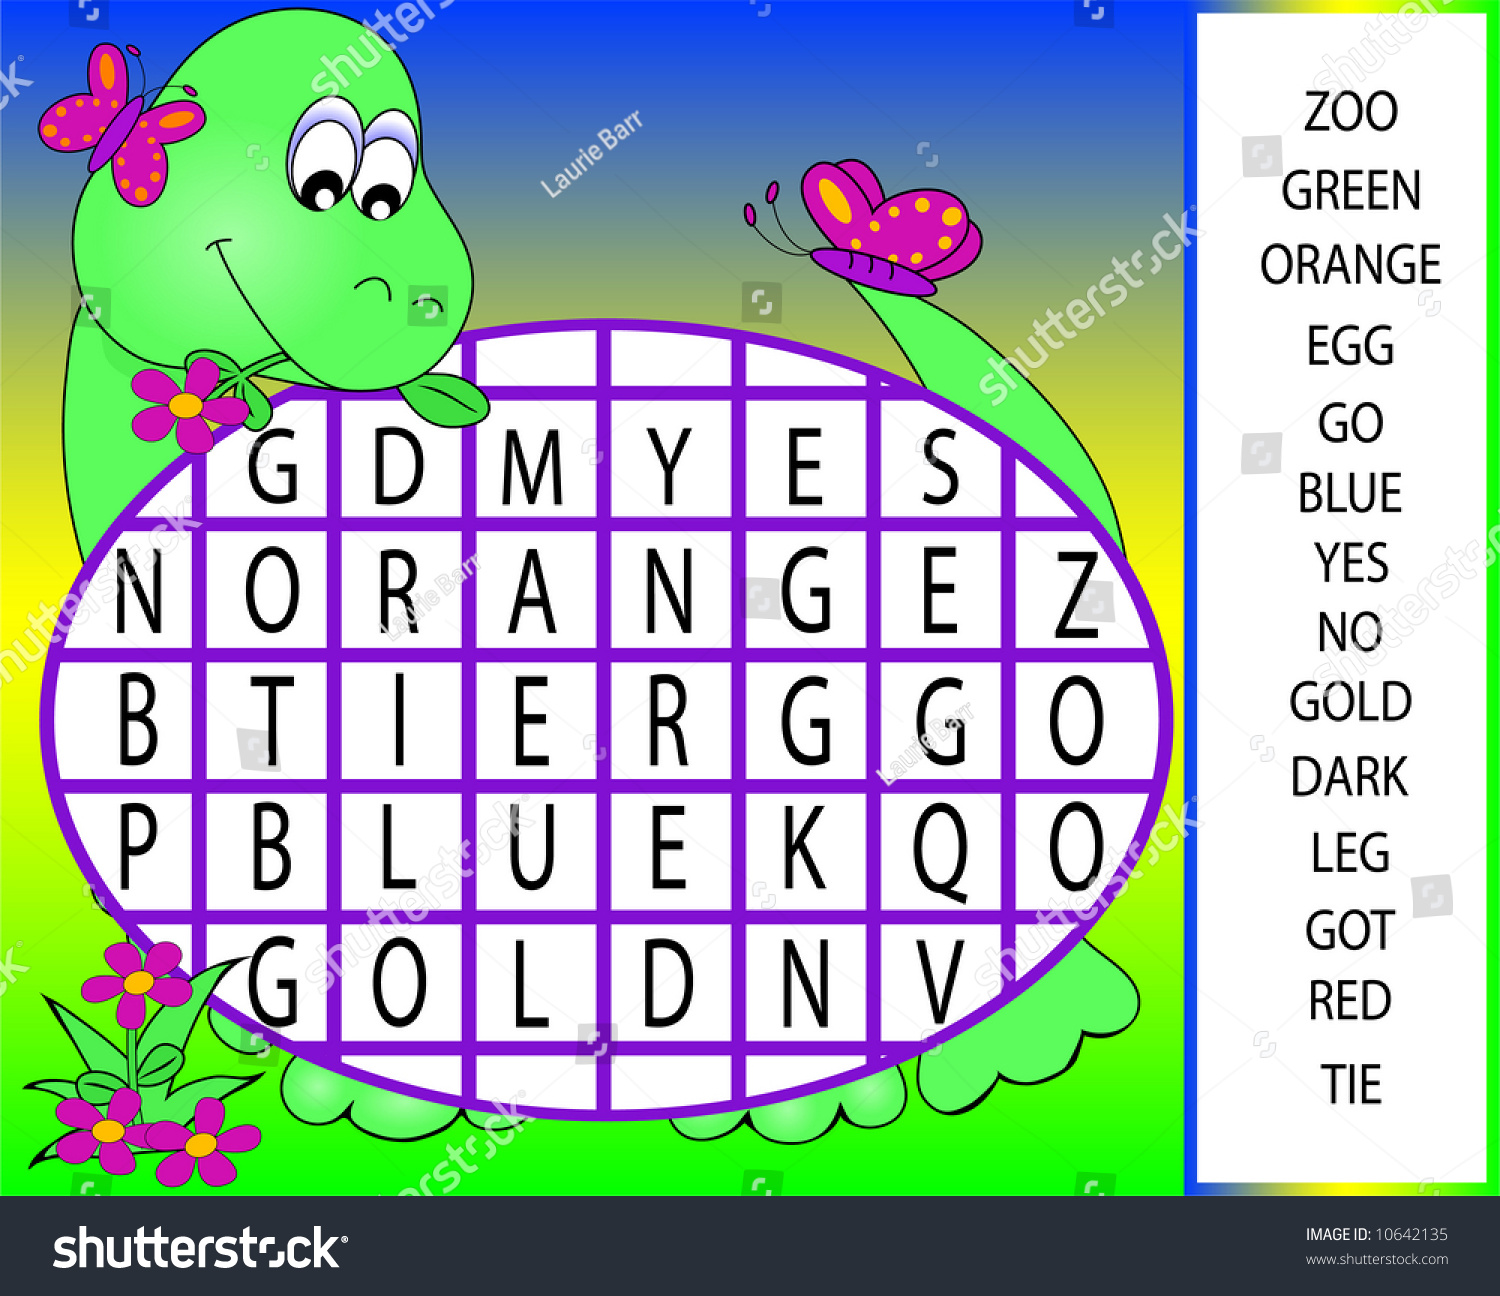 Dinosaur Word Search Puzzle Stock Photo